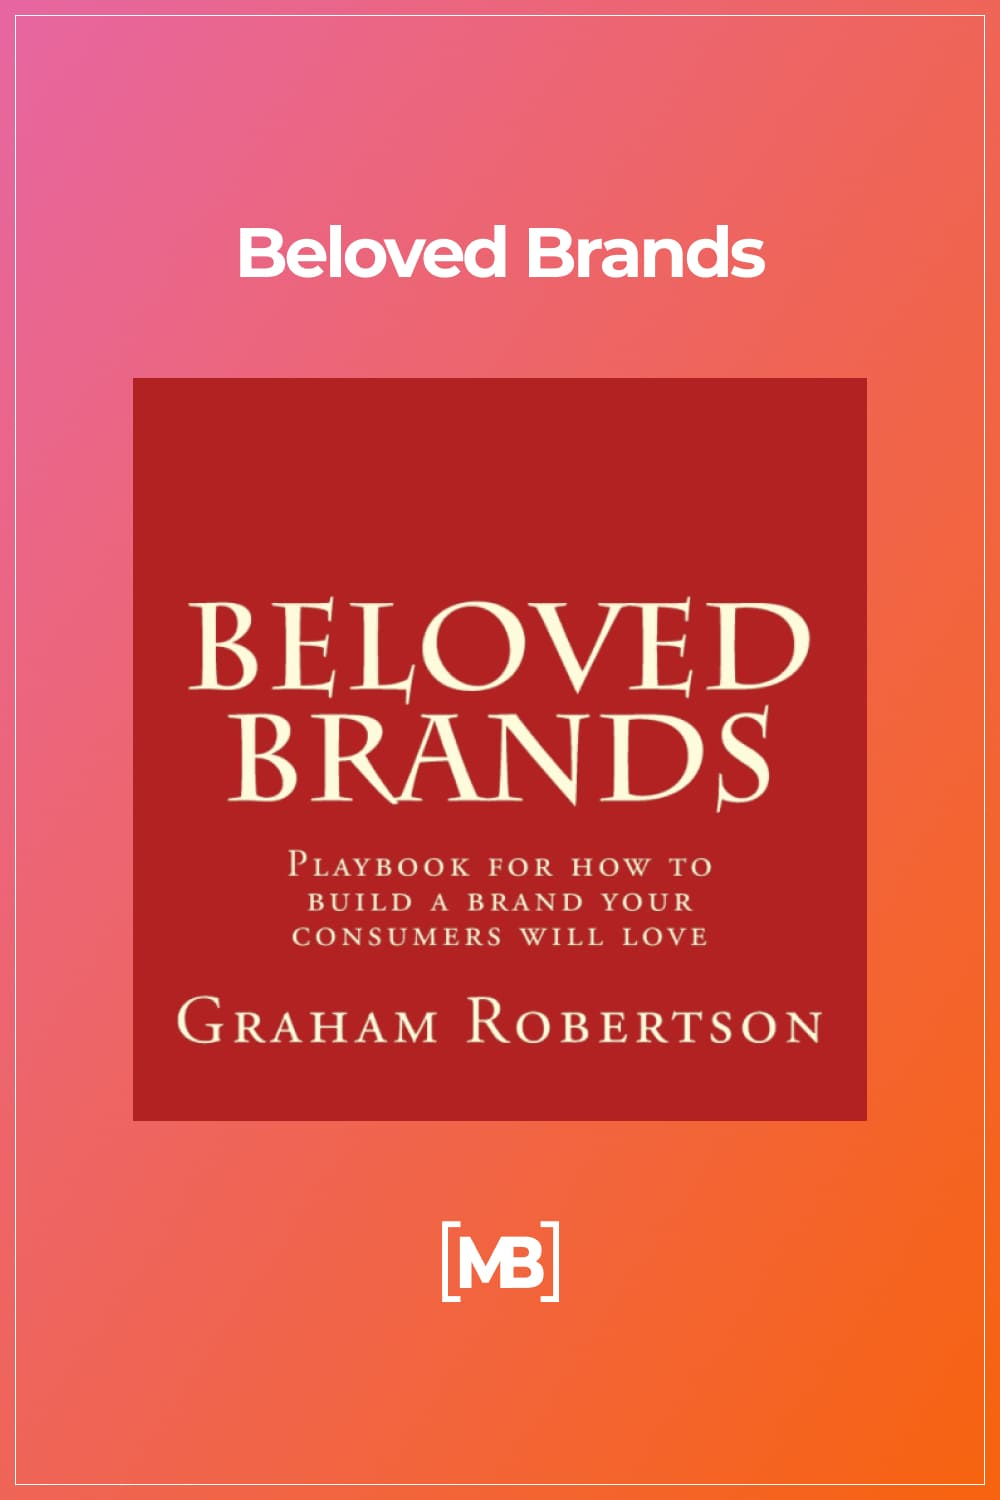 With Beloved Brands, you will learn everything you need to know so you can build a brand that your consumers will love.